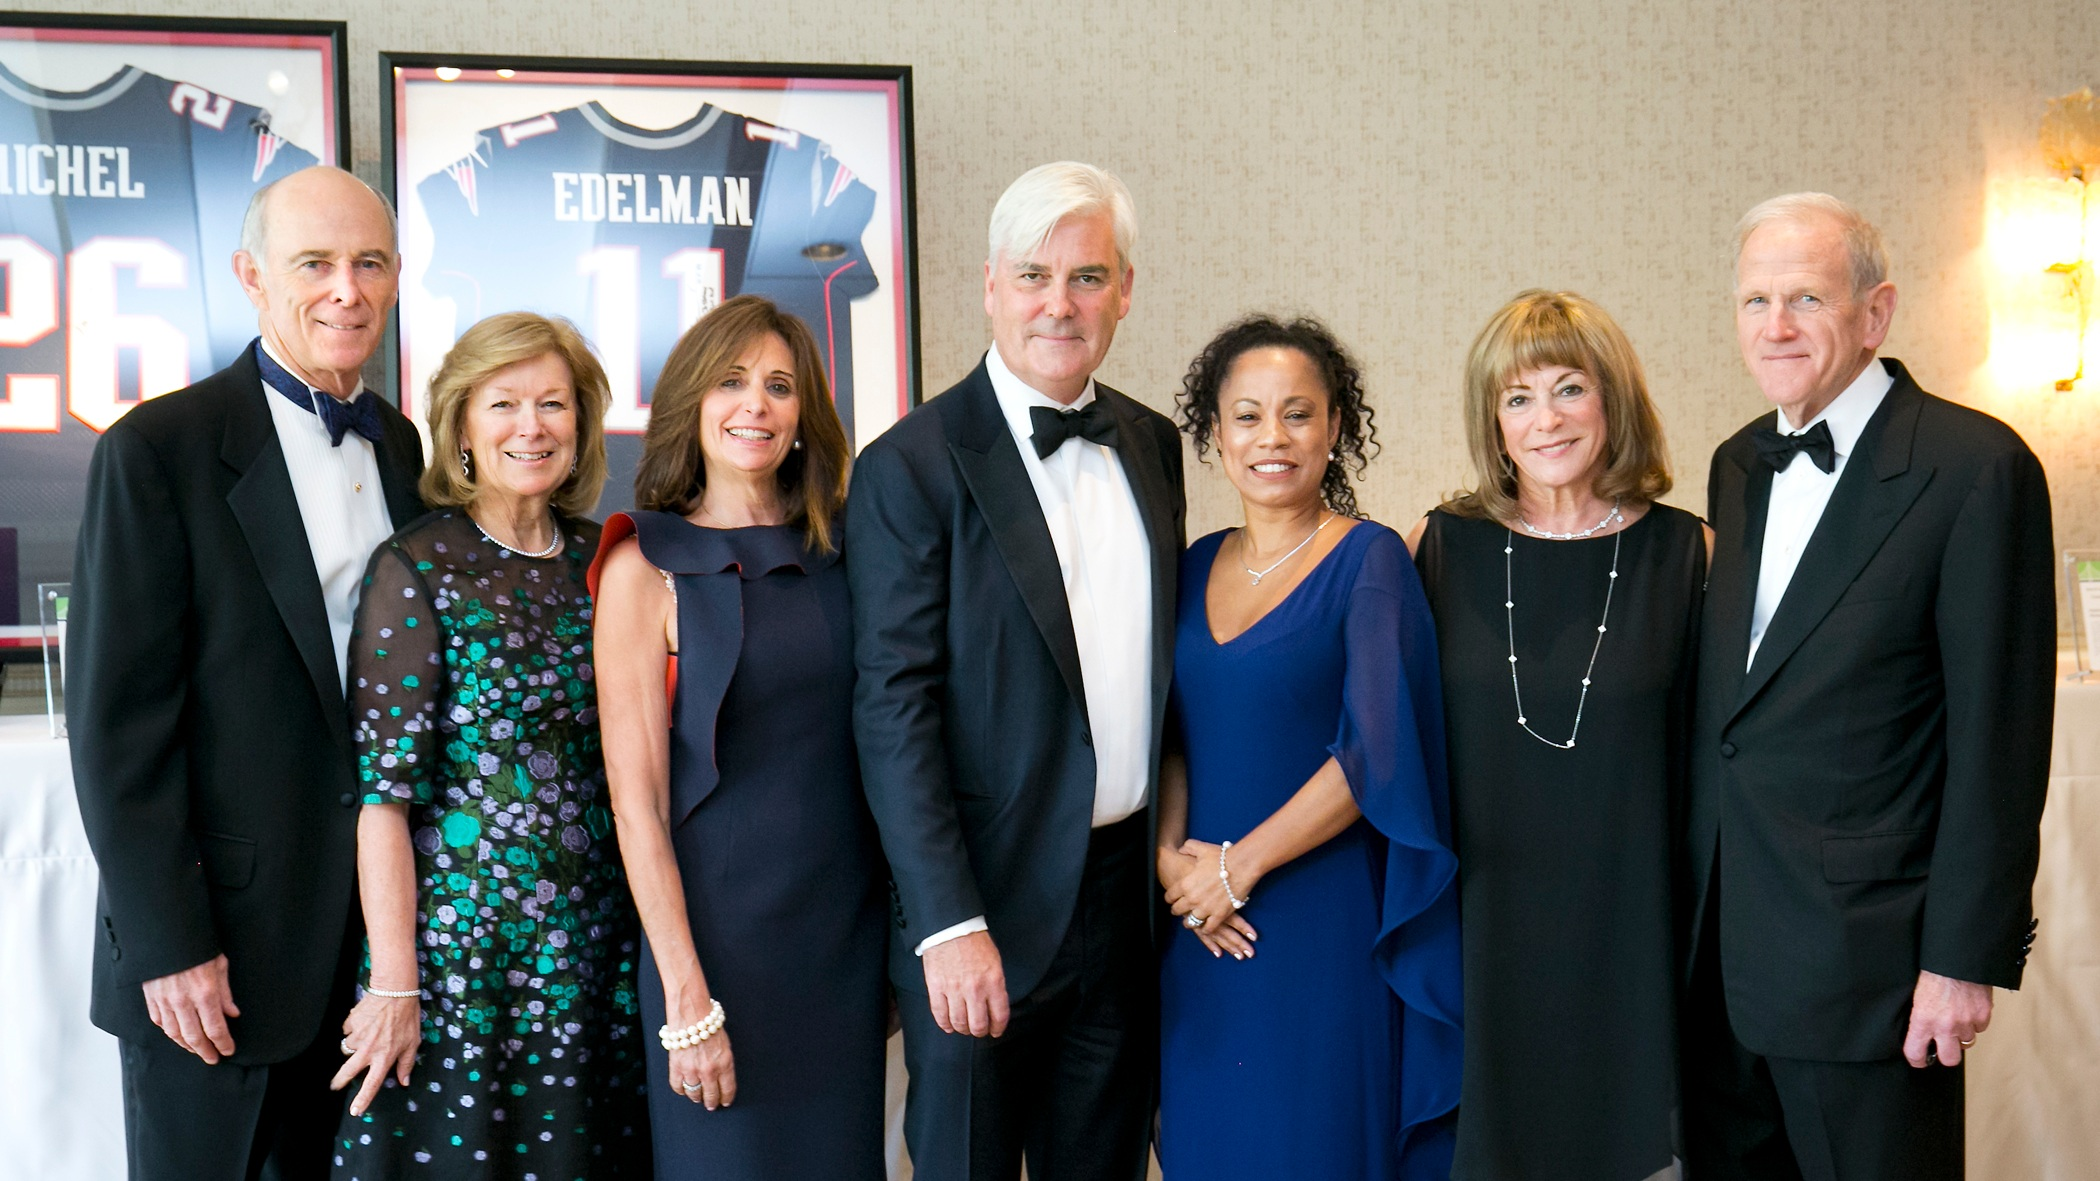 From left to right: 2019 Event Co-Chair Tom May and Donna May; Stephanie Long and 2019 Distinguished Honoree David Long; Bridge Over Troubled Waters Executive Director Elisabeth Jackson; Gloria Clough, Bridge Board Chair; and 2019 Event Co-Chair Chuck Clough.